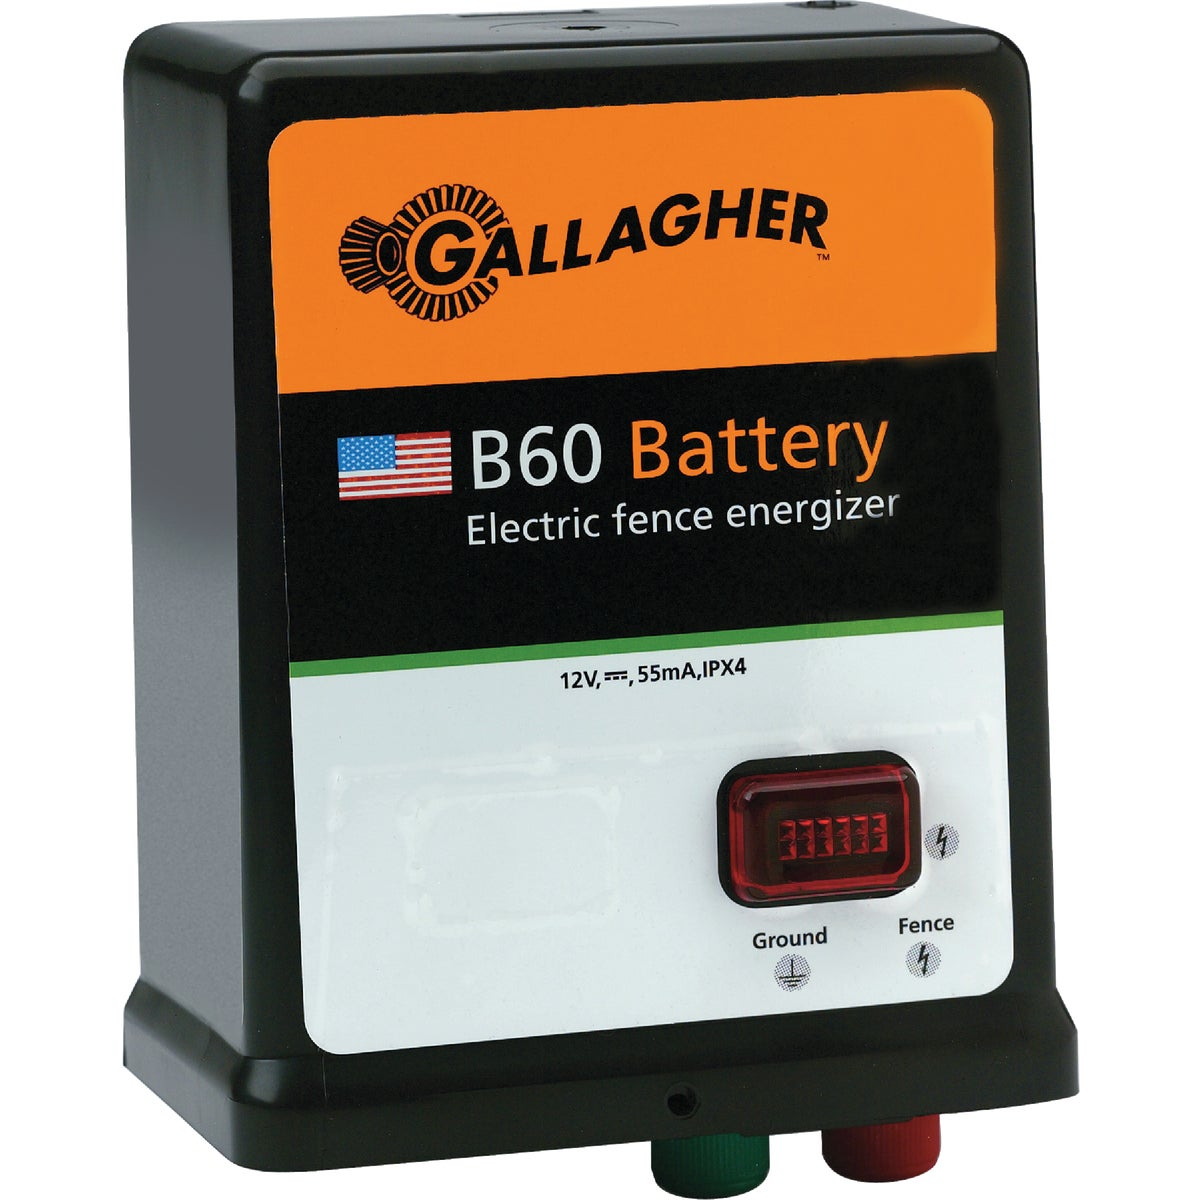 B60 12V BATTERY - G351504 by Gallagher